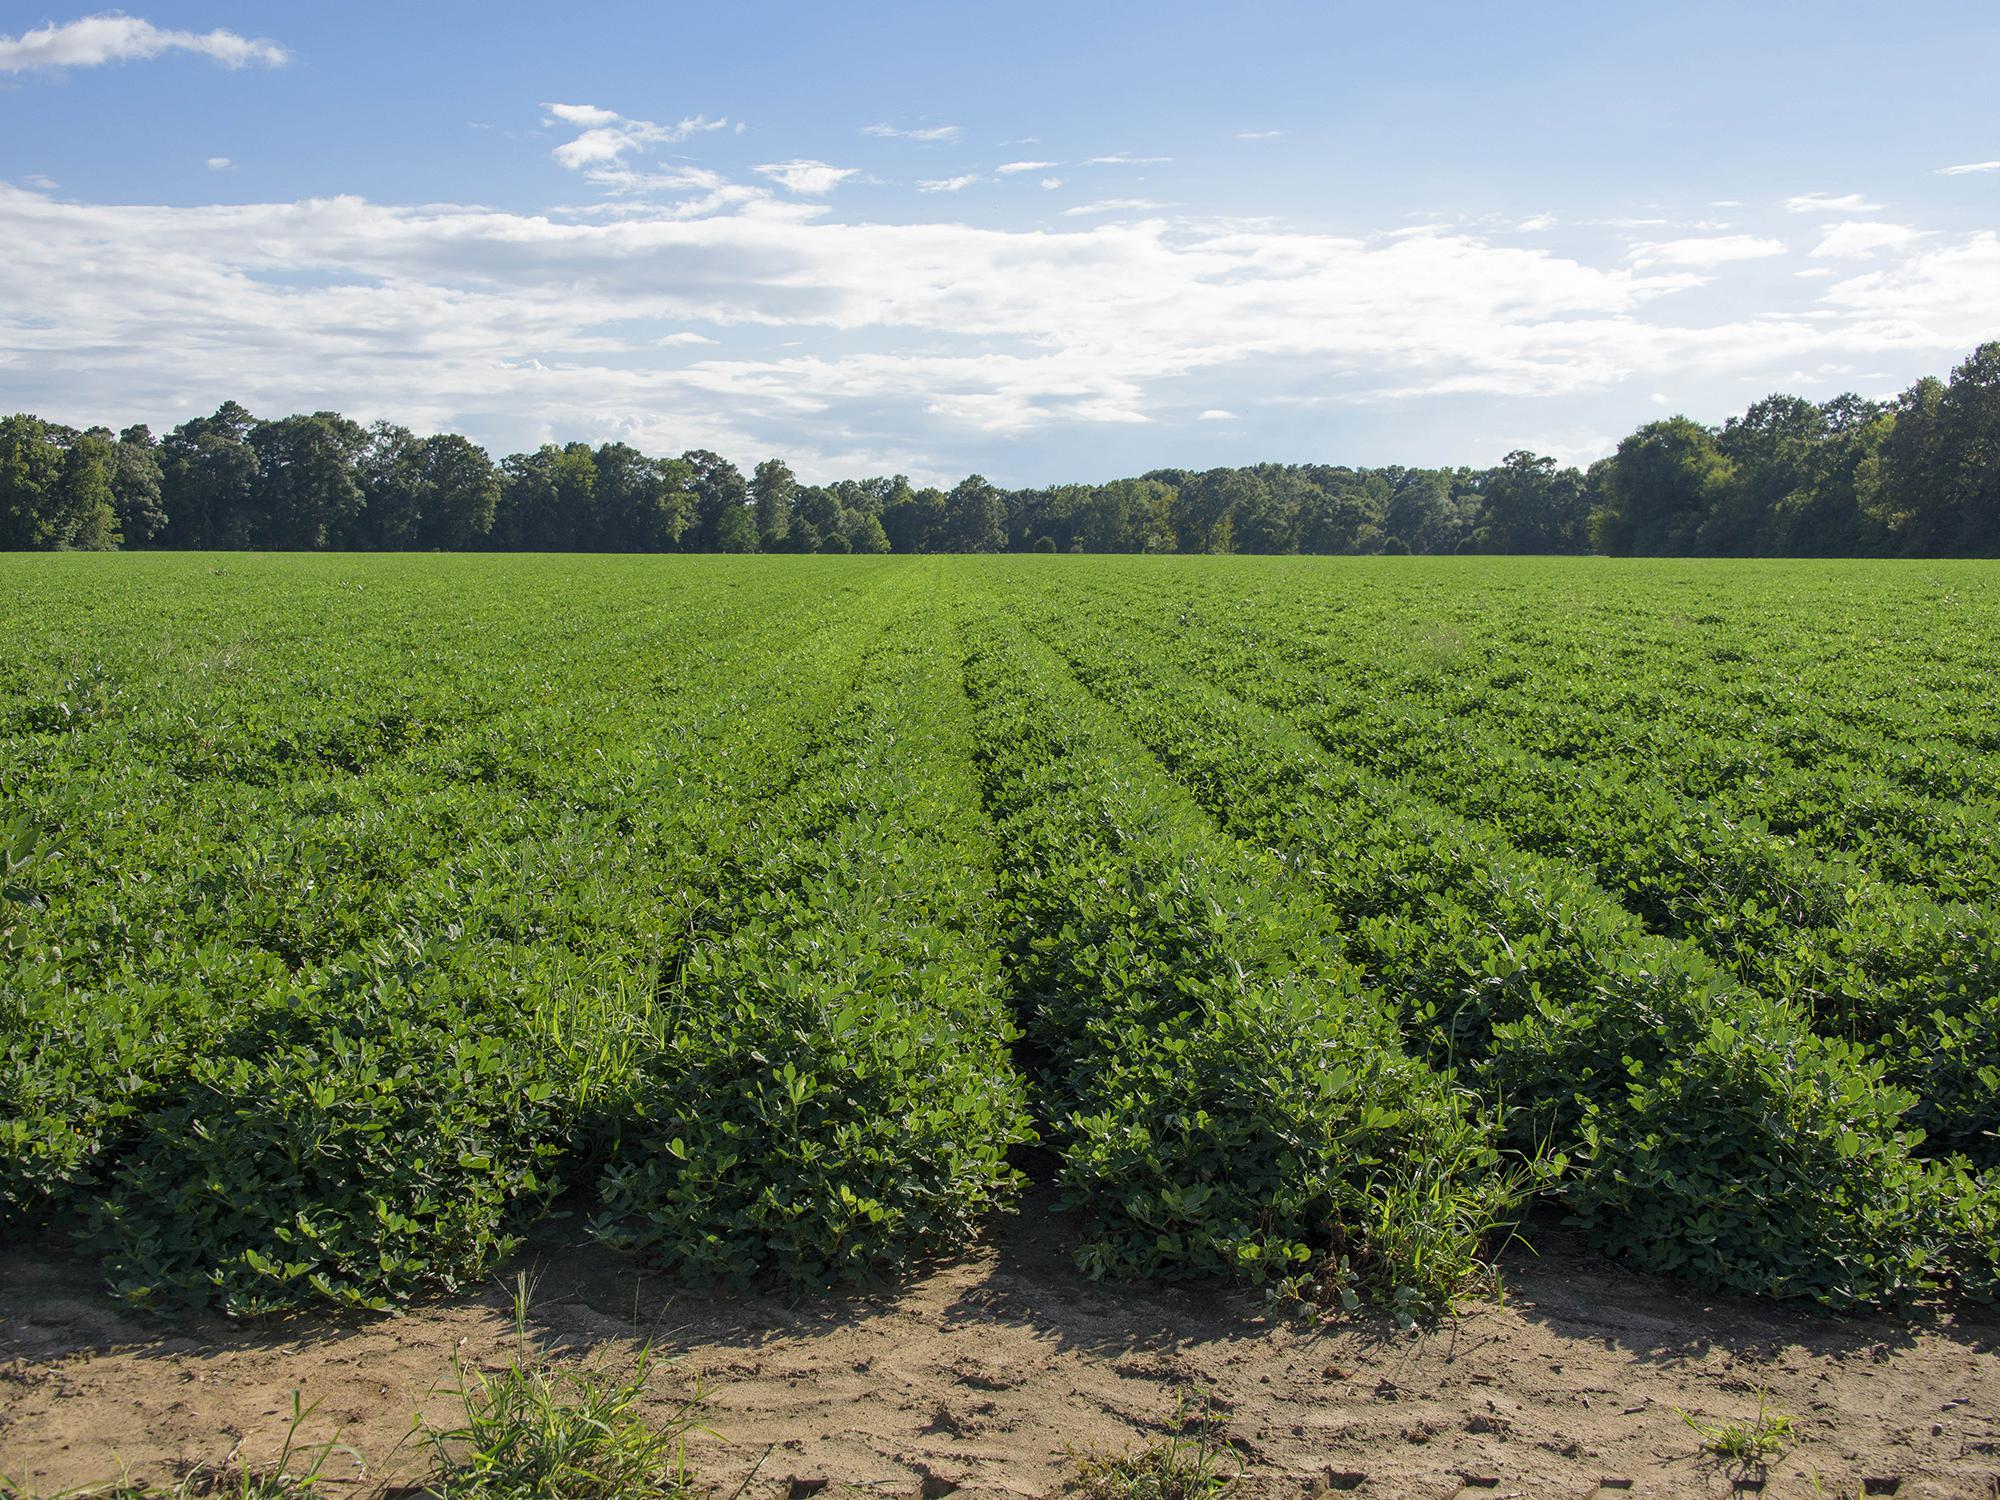 Peanuts in this Monroe County field look good on Aug. 10, 2016. Harvest is expected to begin around Sept. 10, and yield may average more than 4,000 pounds per acre, up from the average of 3,400 pounds per acre last year.  (Photo by MSU Extension Service/Kevin Hudson)